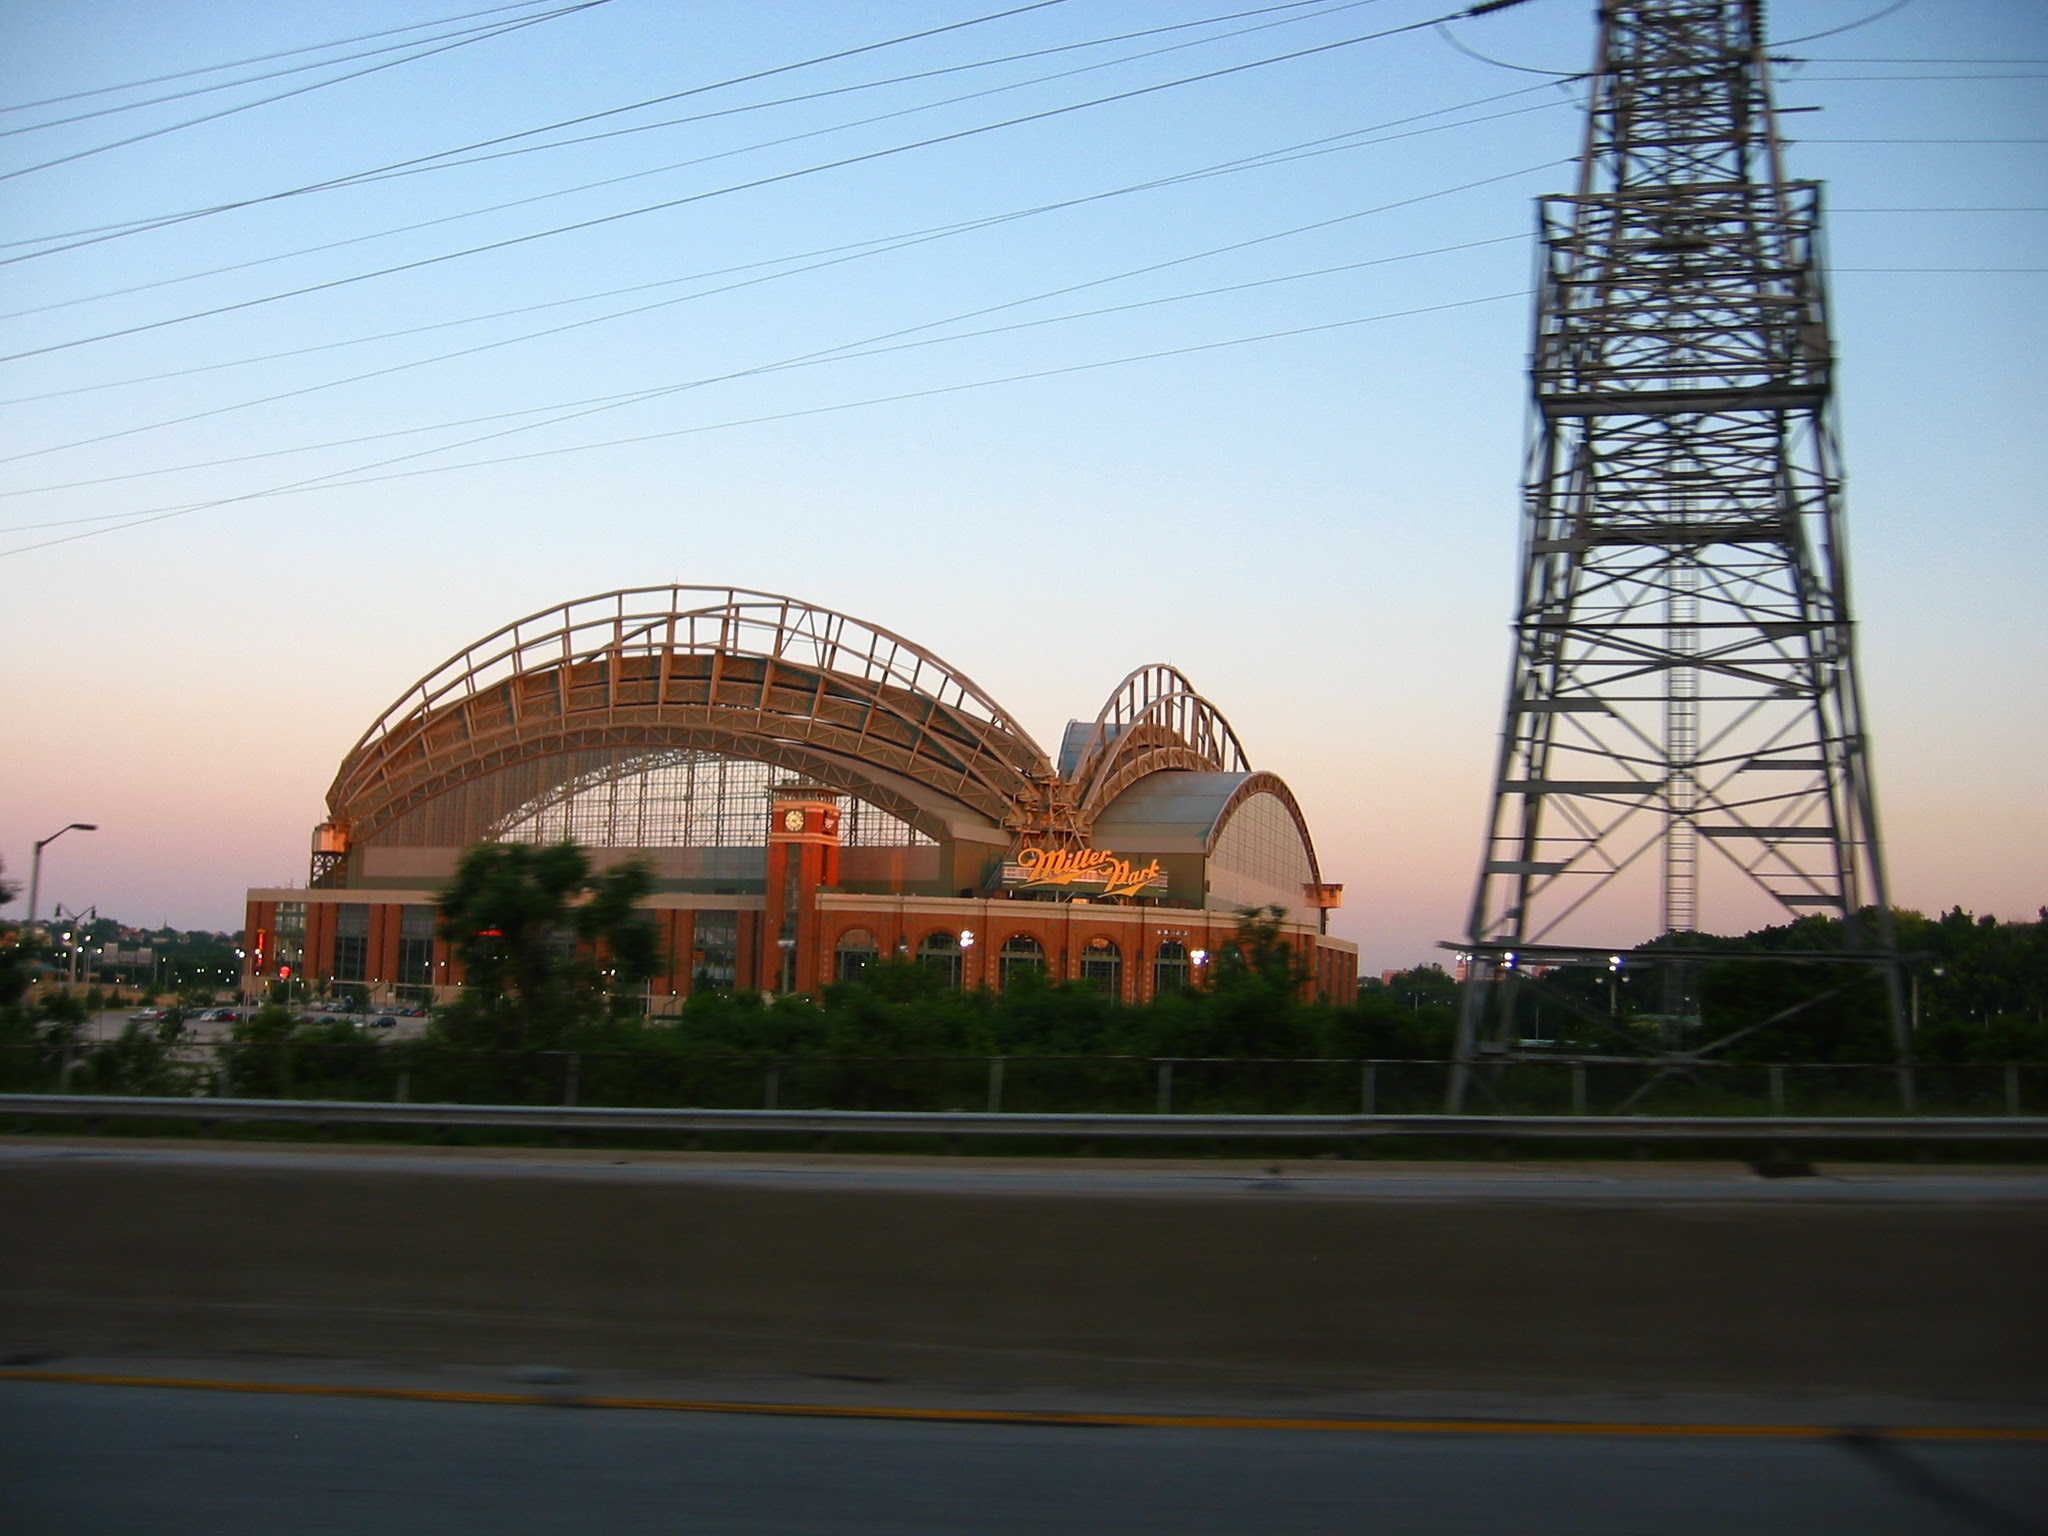 Miller Park in sunset June 2007 - soul-amp.com